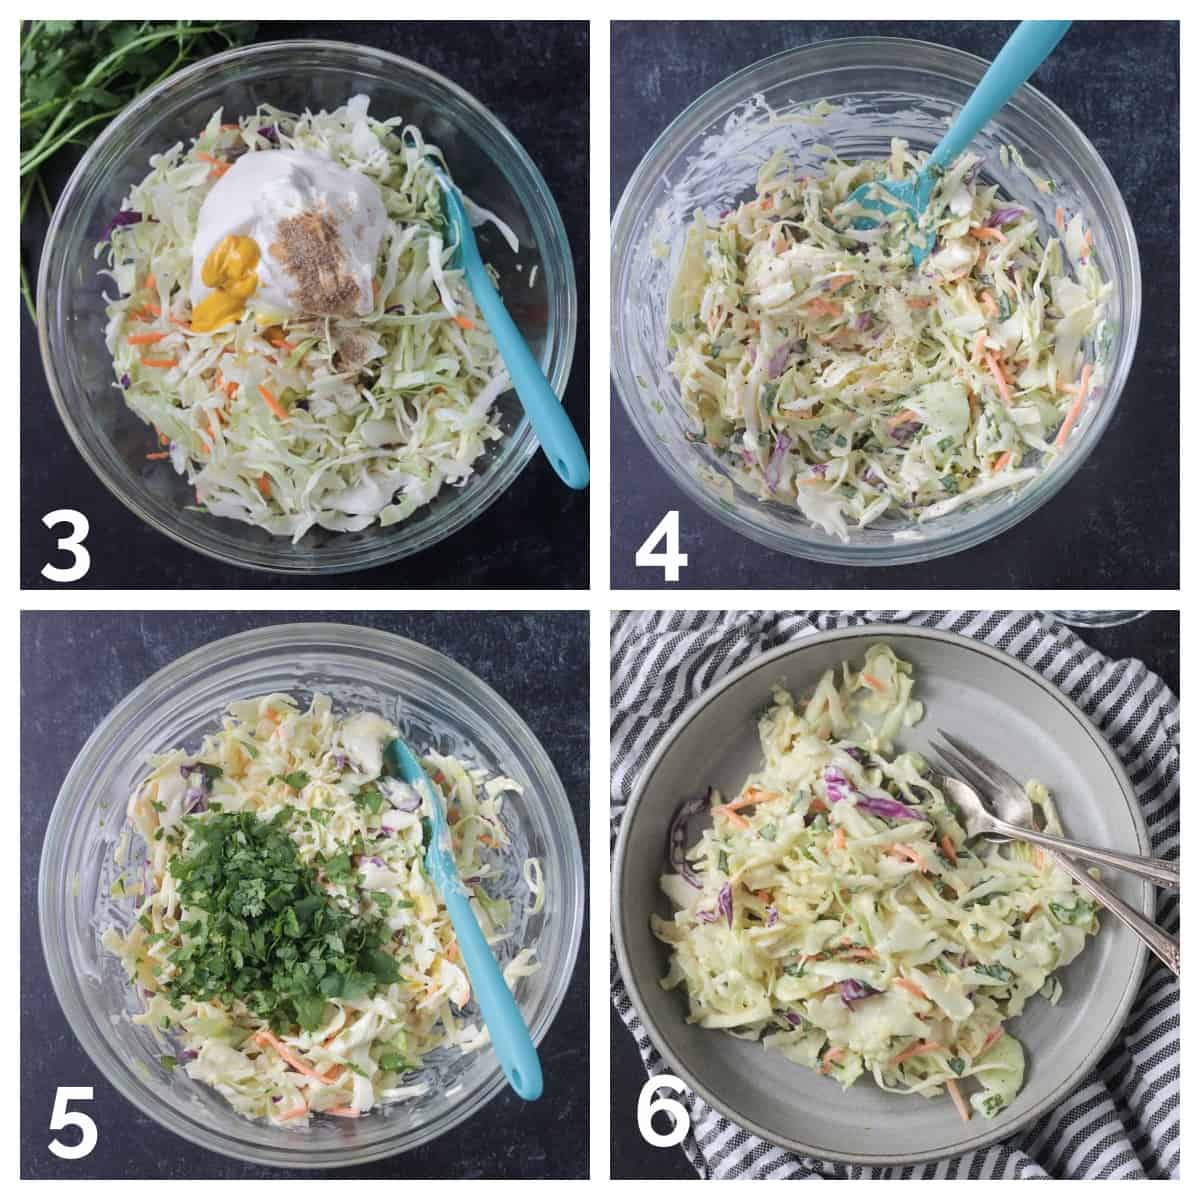 4 photo collage of mixing the coleslaw and garnishing with cilantro.